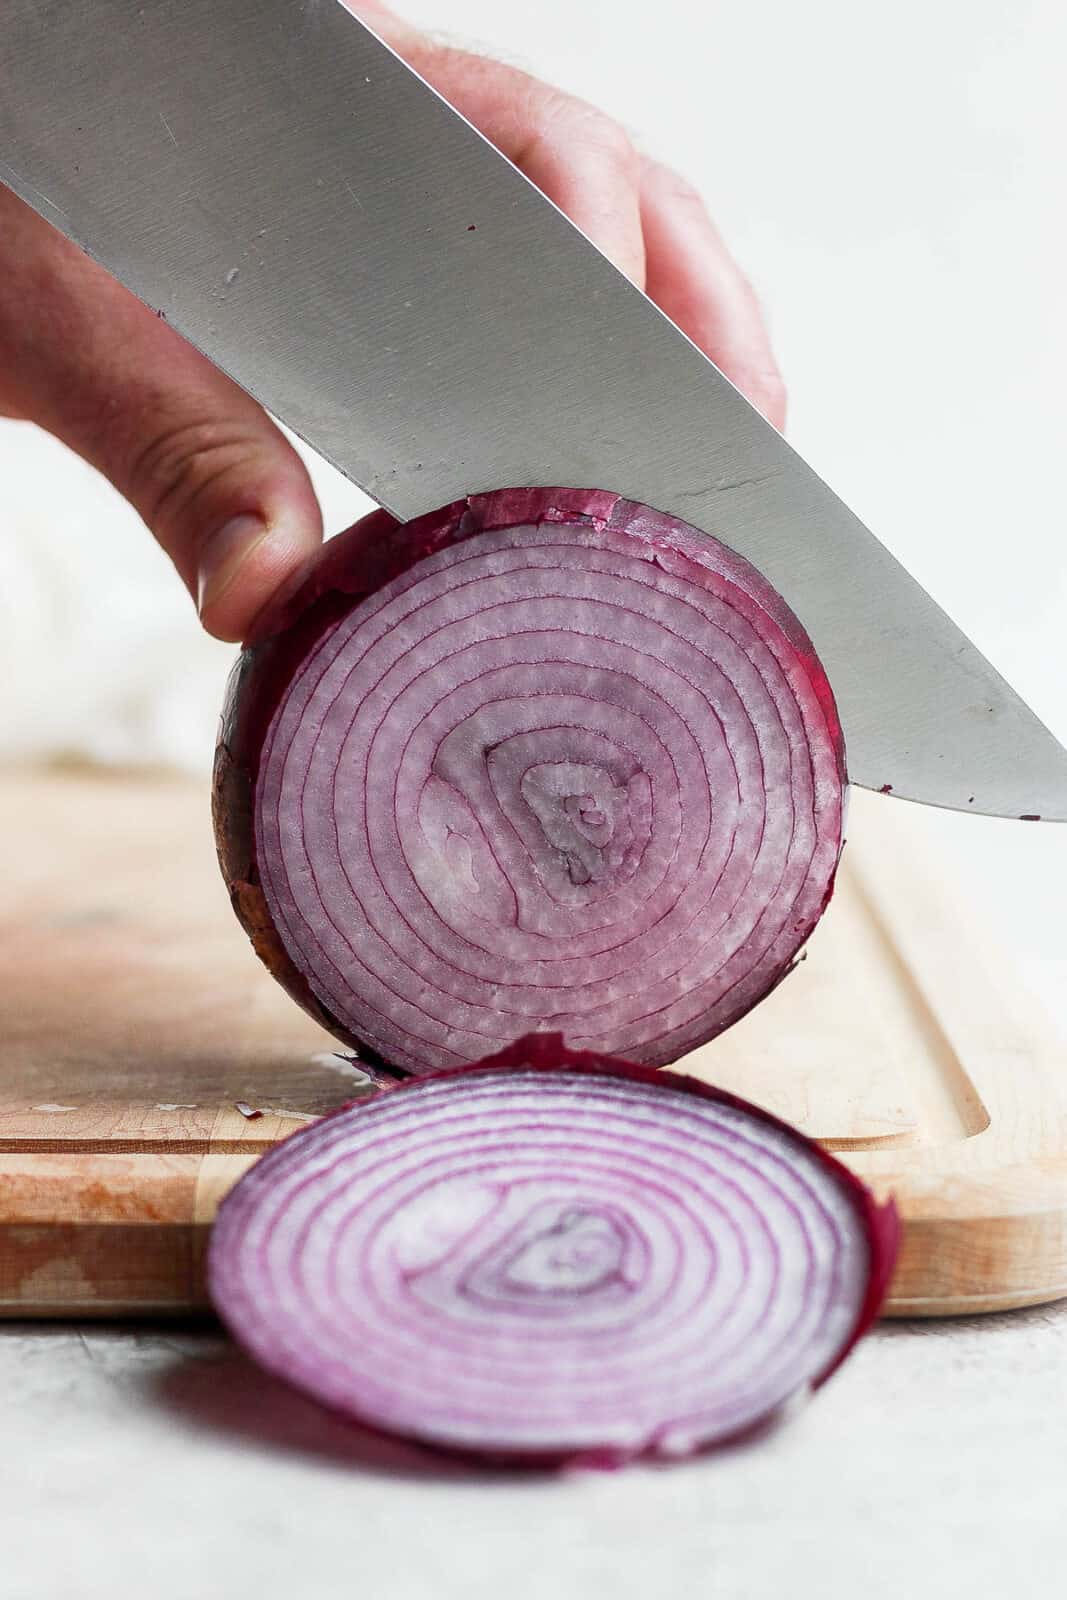 A red onion being sliced on a cutting board.